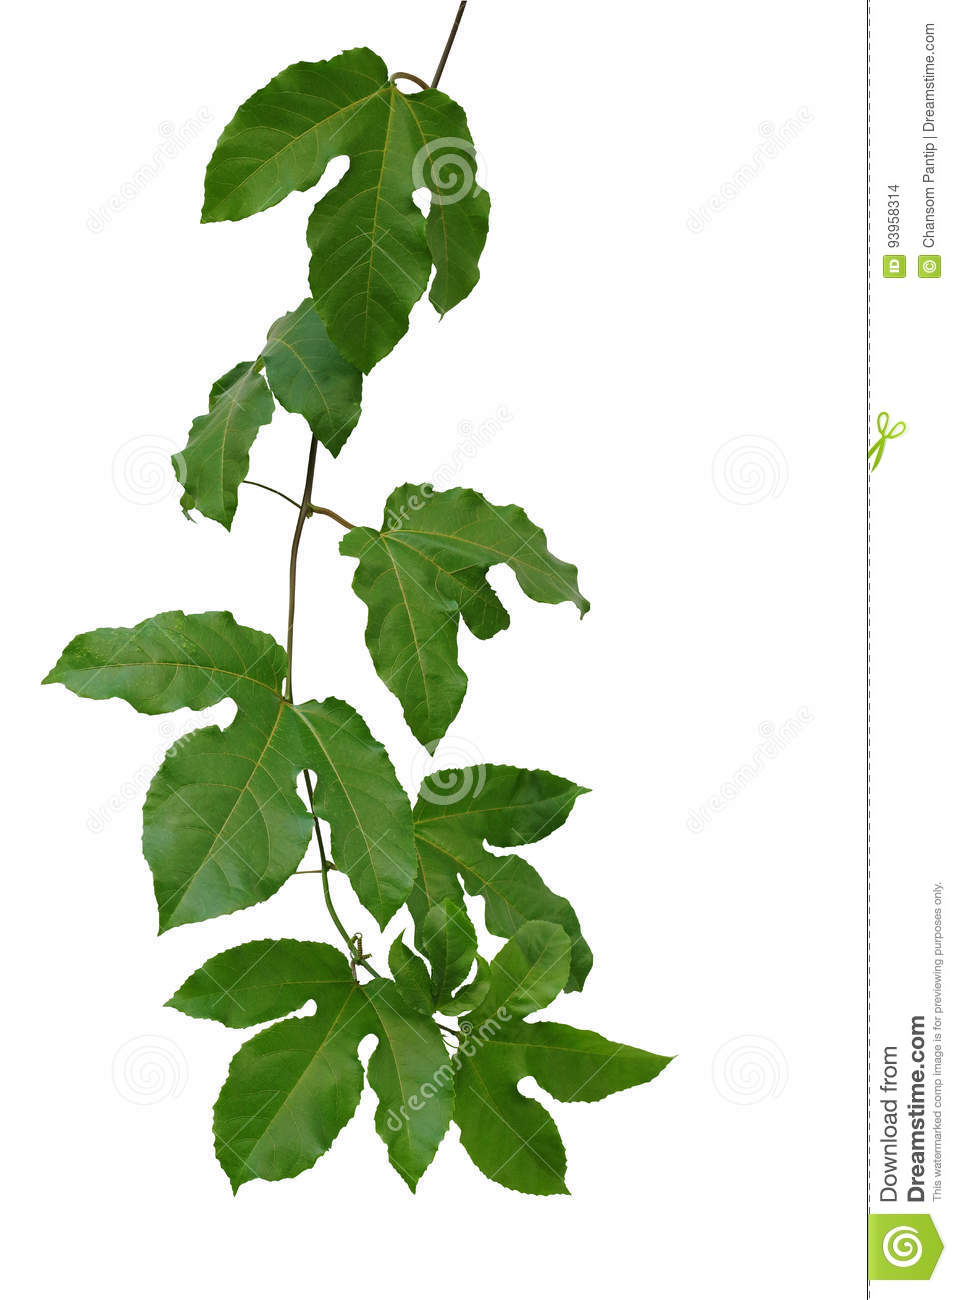 Passion fruit green leaves climbing vine isolated on white background, clipping path included.